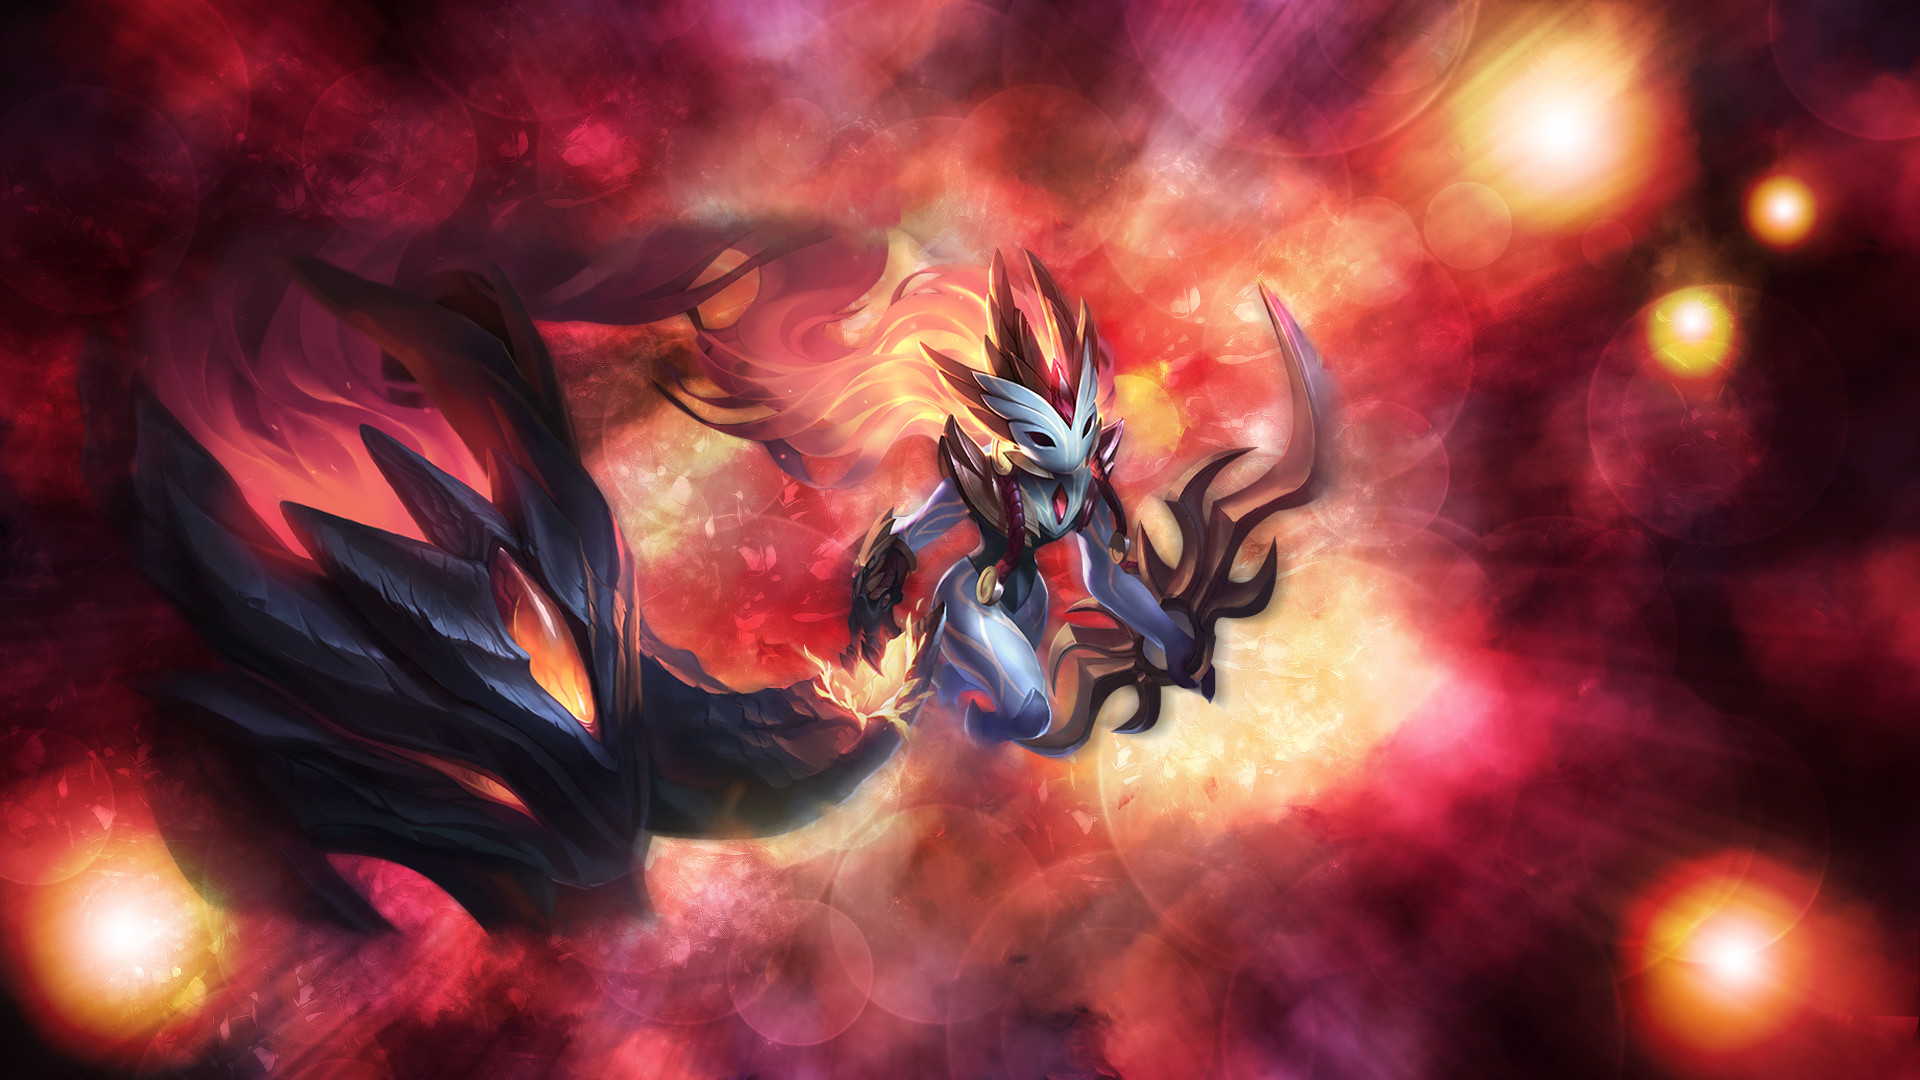 Shadowfire Kindred wallpaper